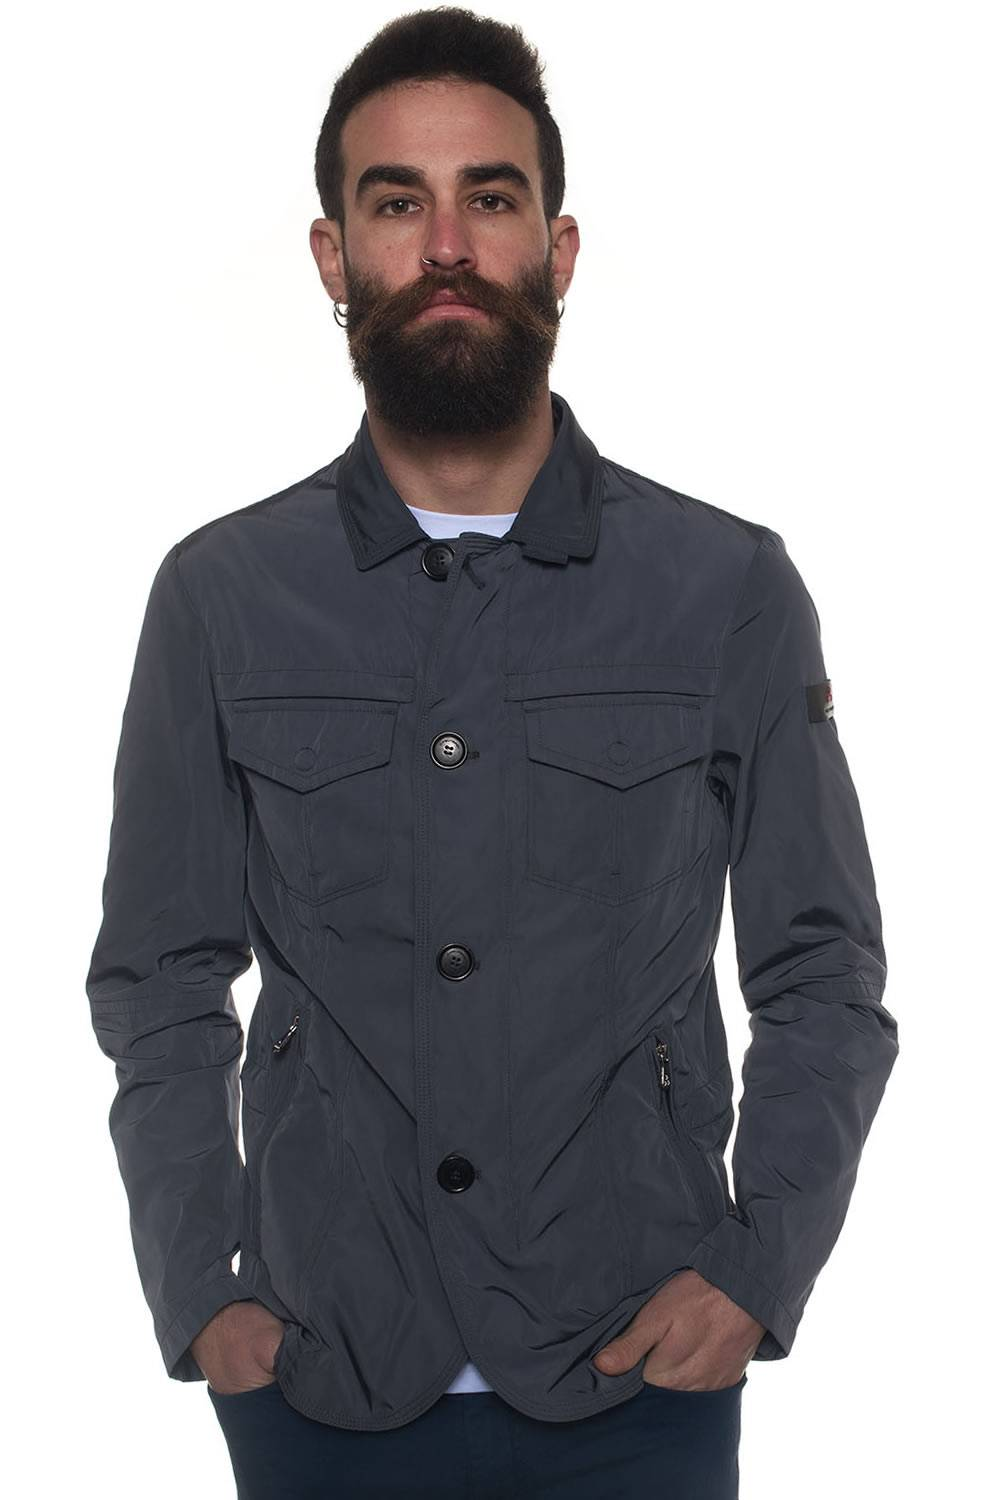 Peuterey Field jacket Hollywood